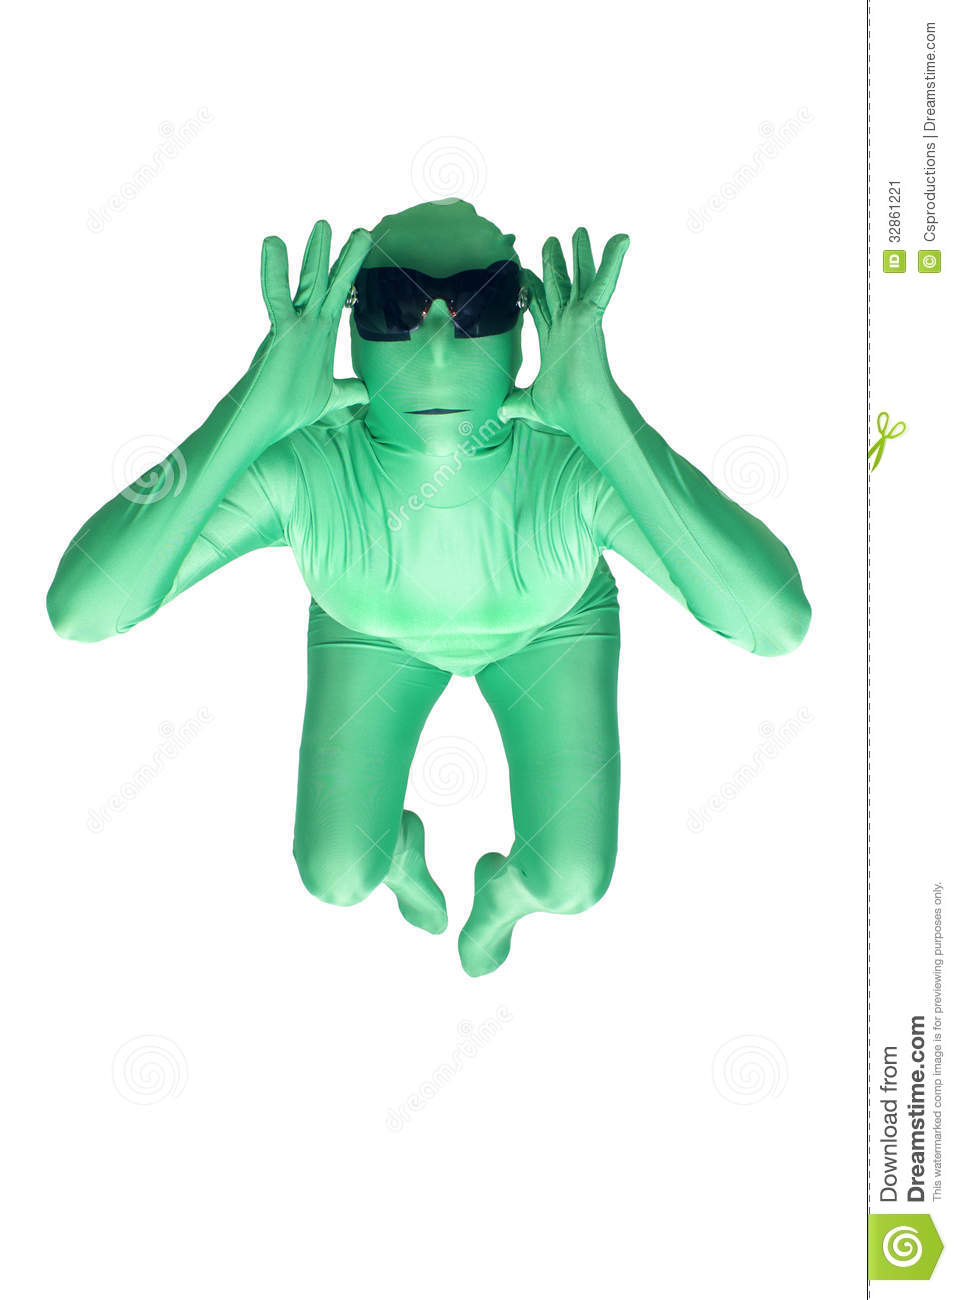 green space suits - photo #40